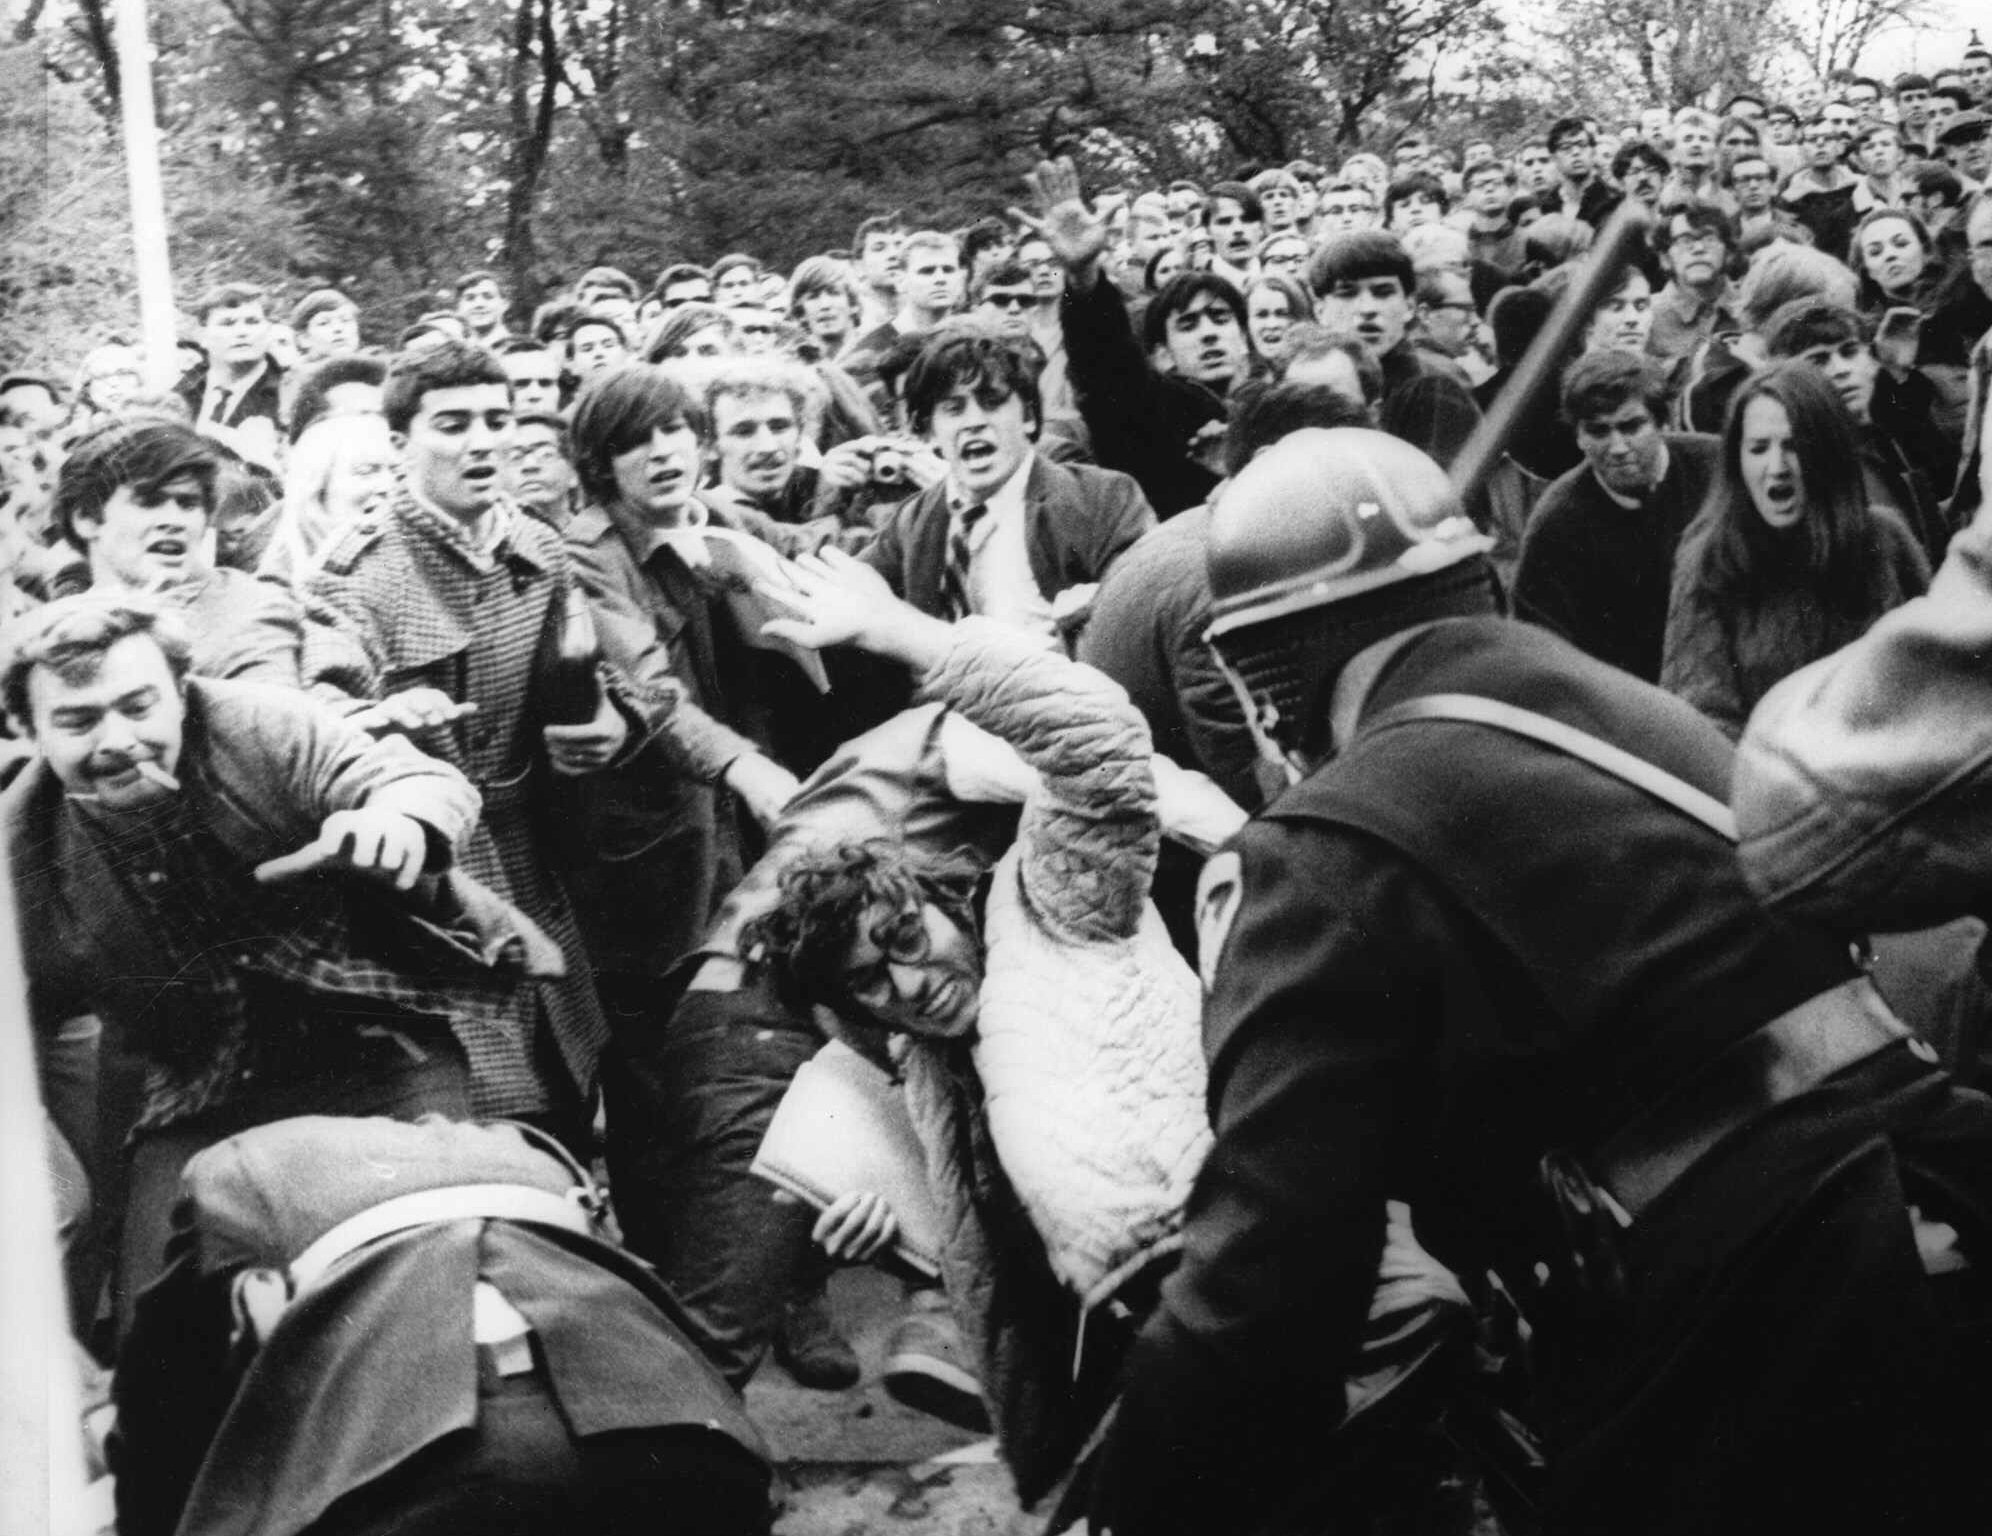 A stick-swinging Madison riot police officer beats back an angry throng of University of Wisconsin protesters, Wednesday, October 19, 1967 on campus. Squads of riot officers broke up a sit-in intended to disrupt the Dow Chemical Company. Dow makes Napalm for the War in Vietnam. (AP Photo)